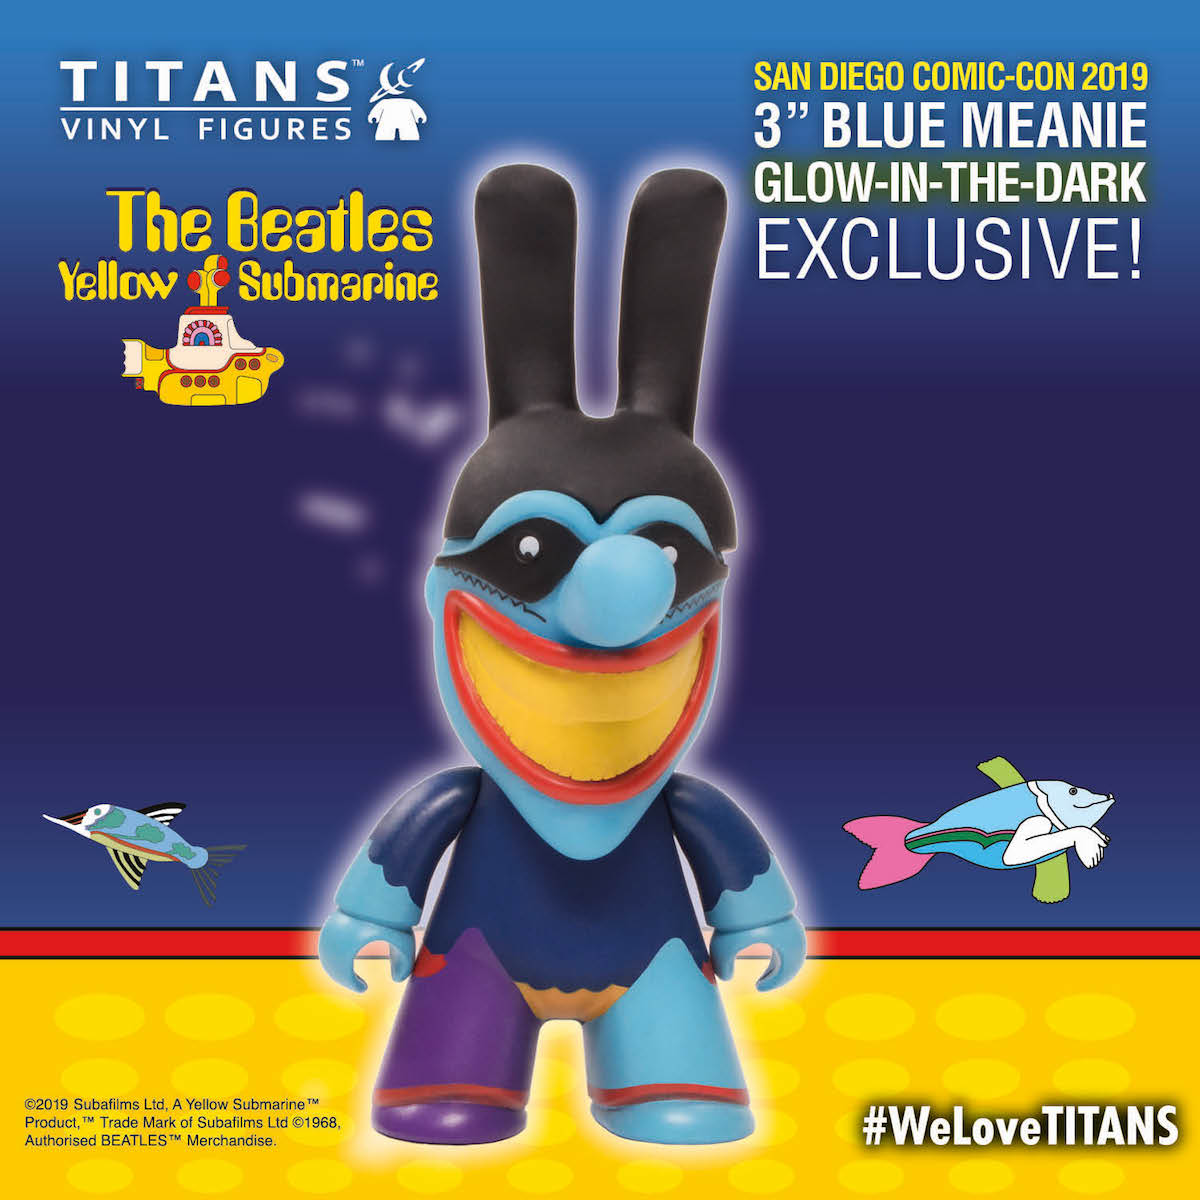 GAME OF THRONES, DOCTOR WHO, and More Get SDCC Exclusive Titans Vinyl Figures_8